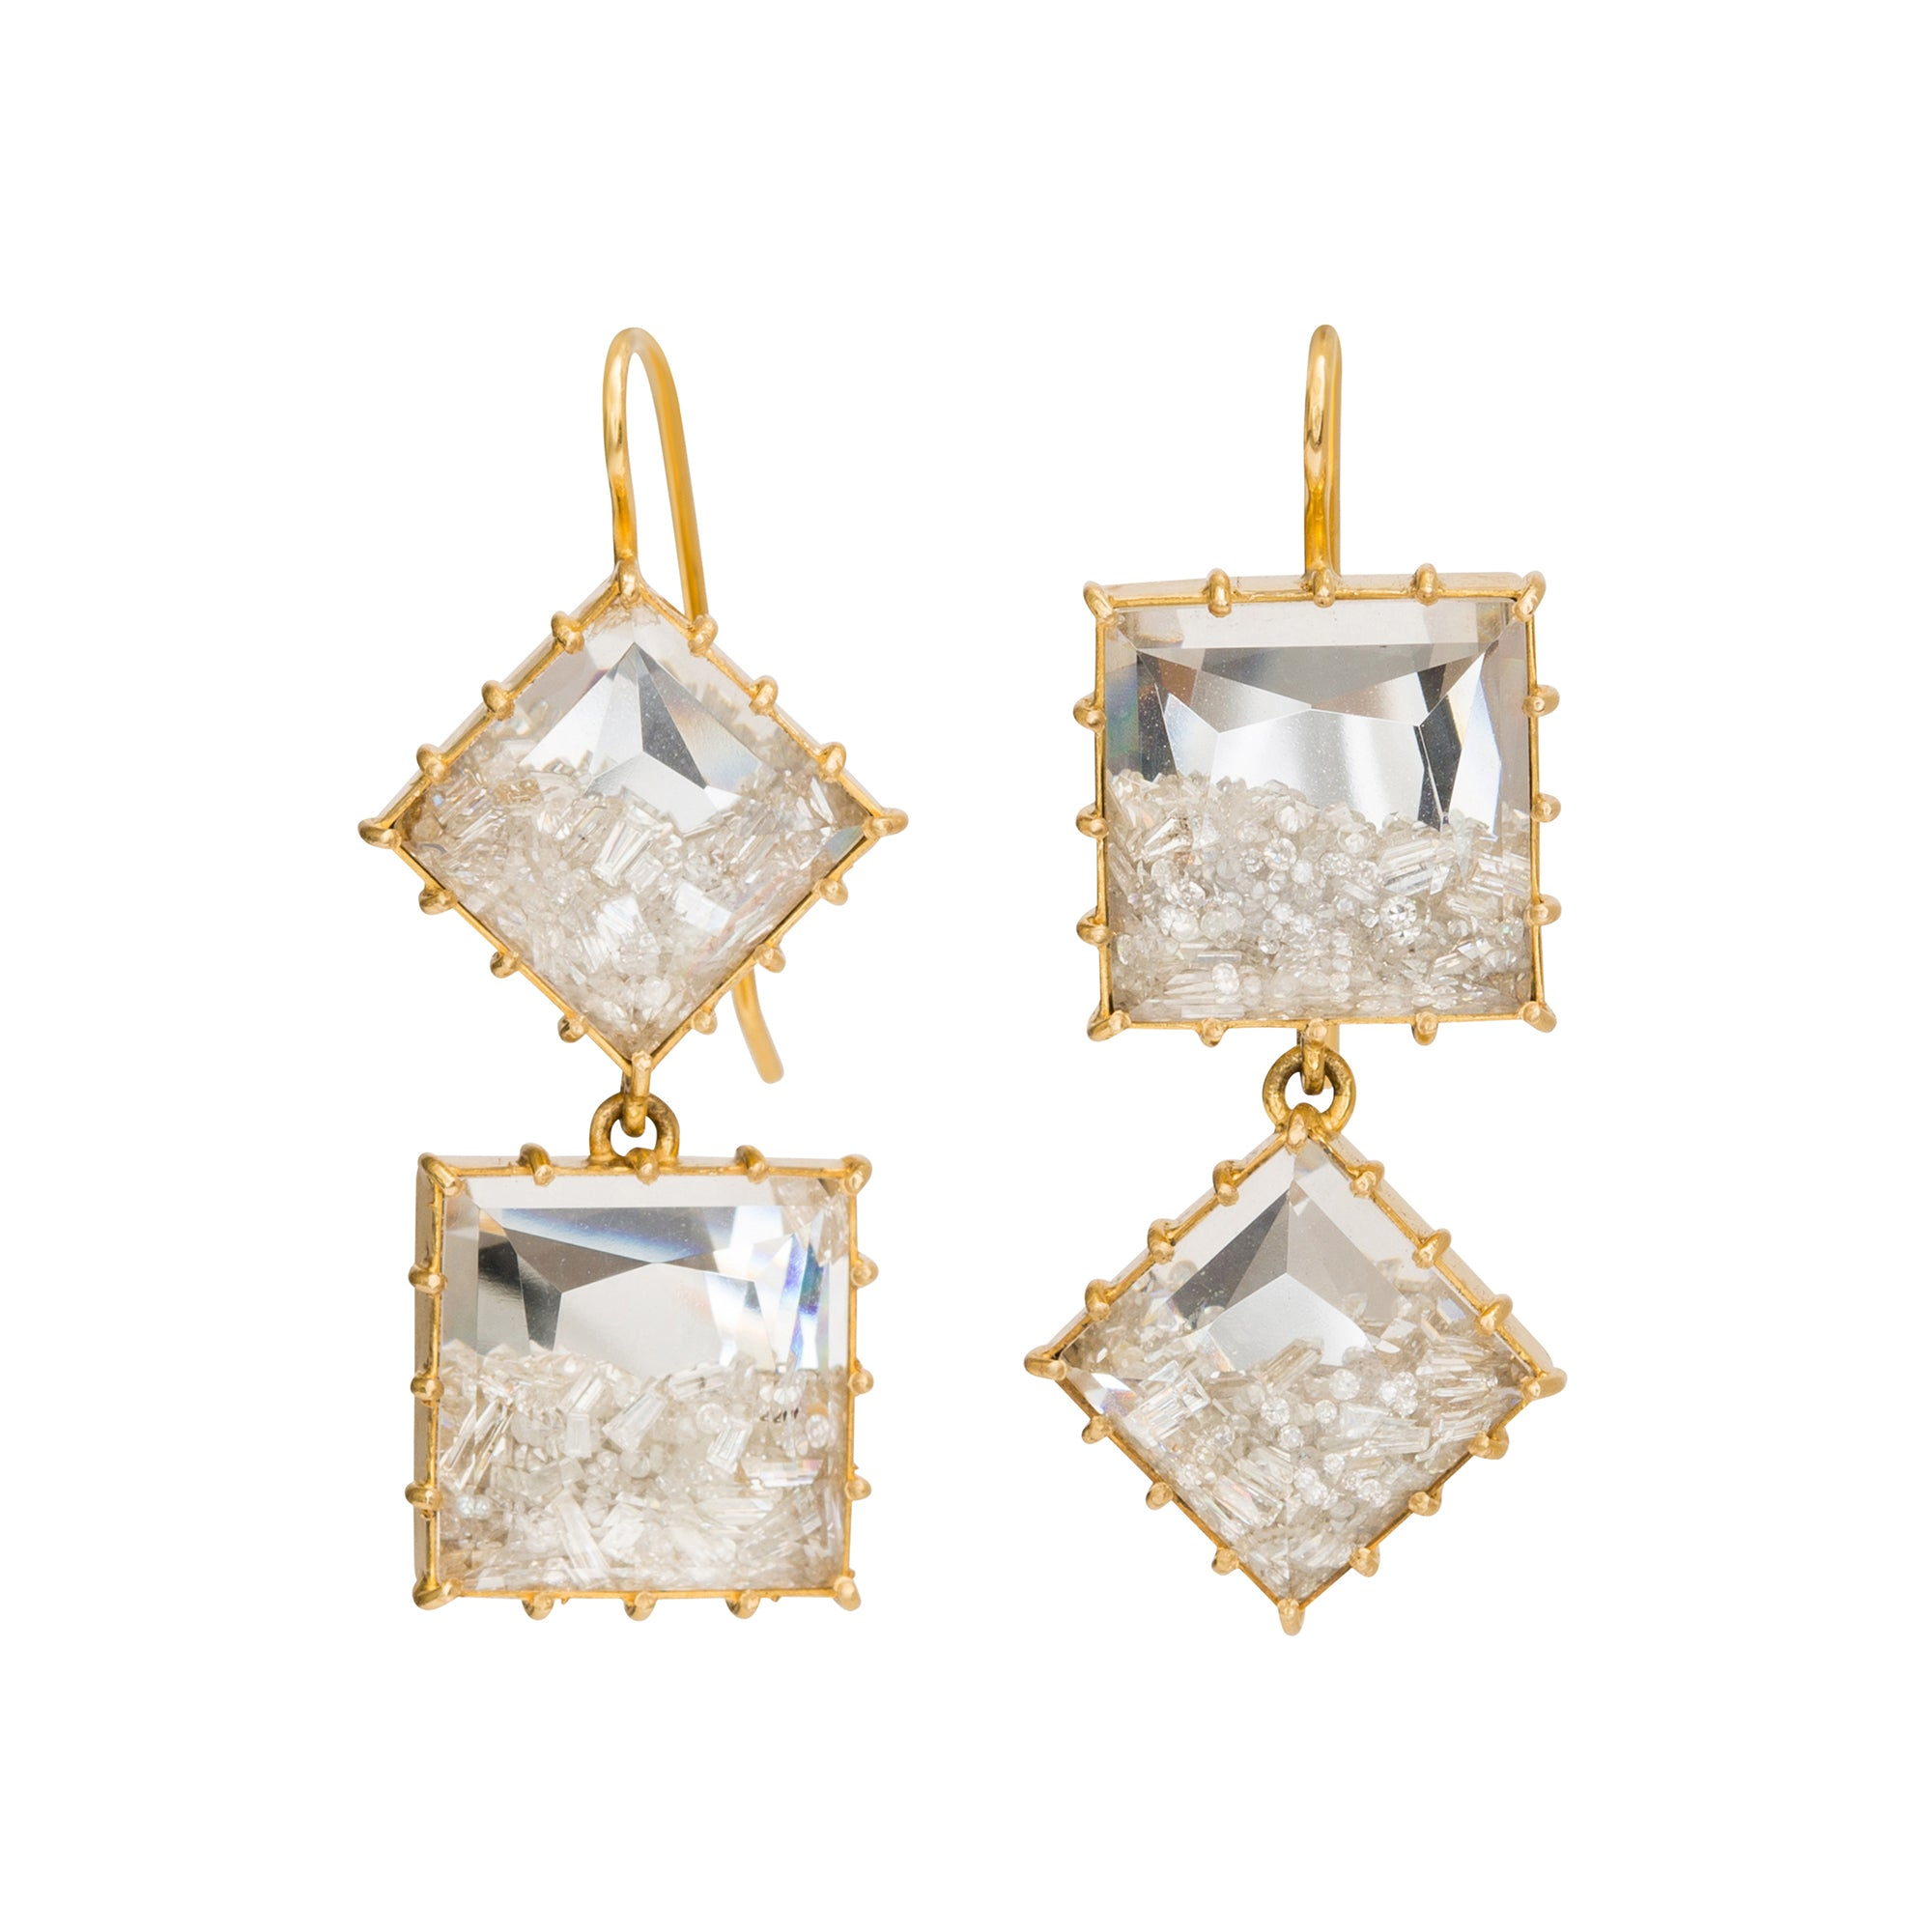 Shake Double Drop Earrings by Renee Lewis for Broken English Jewelry